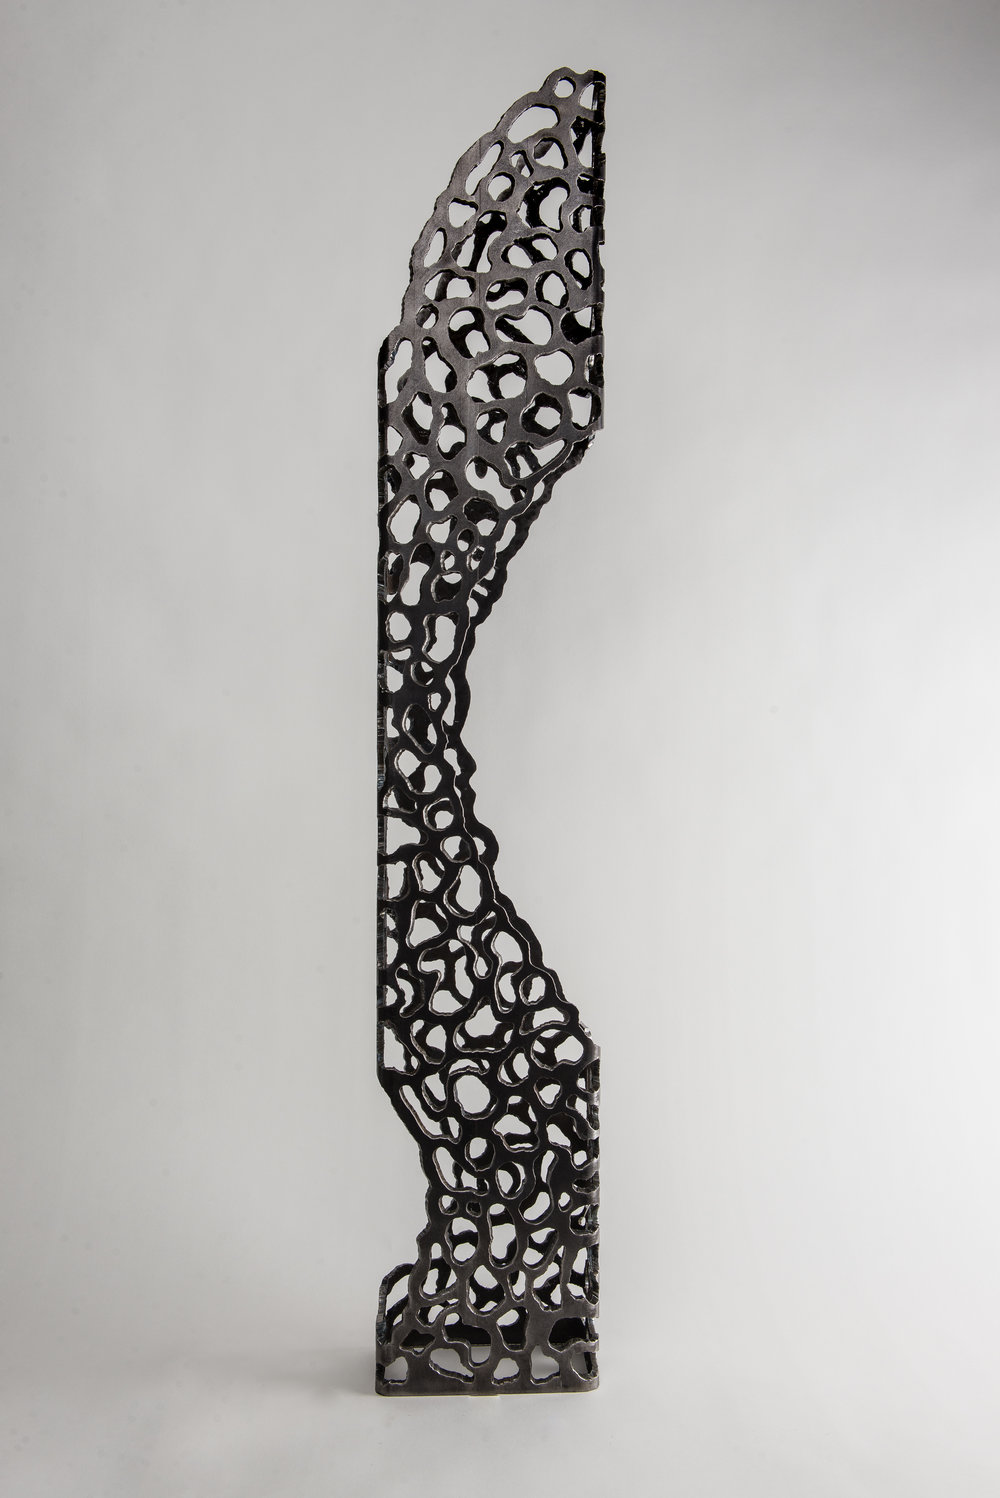 Sculpture_Plasma-1 (2).jpg